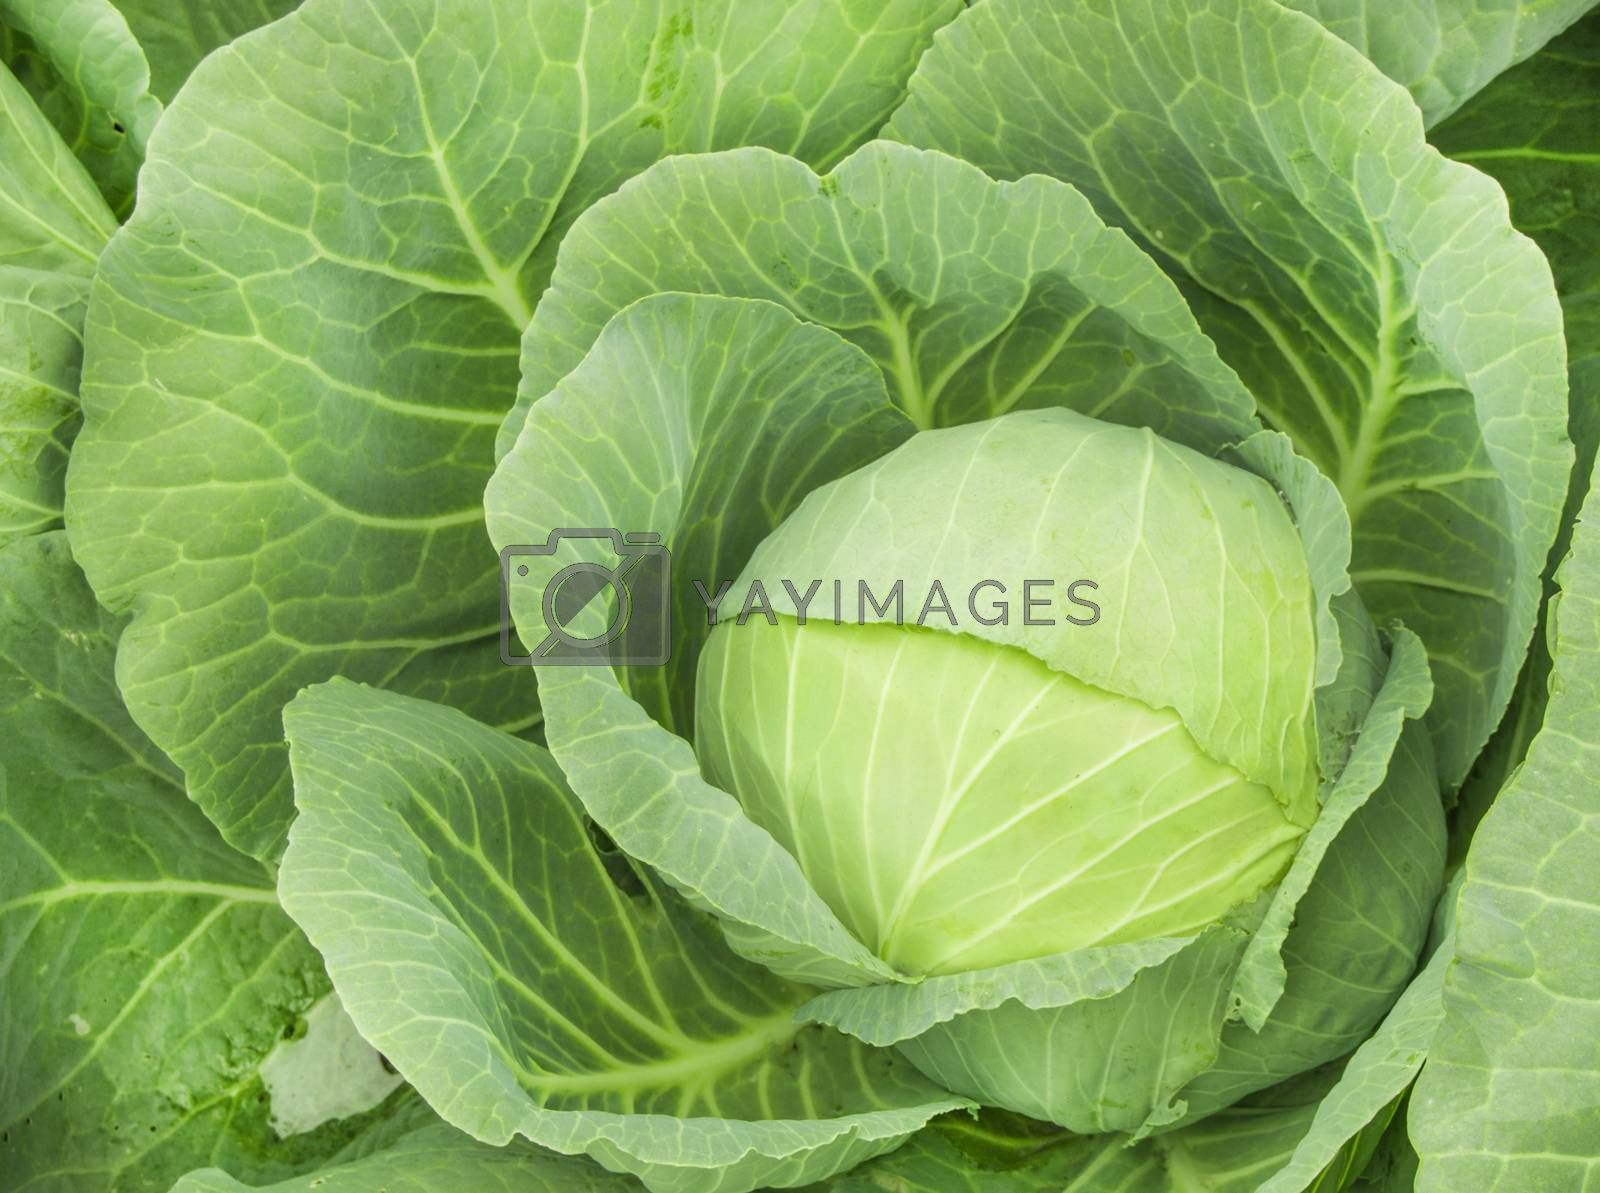 Close-up of fresh ripe cabbage on a vegetable bed. Cabbage forks growing in the garden, top view. Organic vegetable background. Concept of agriculture.